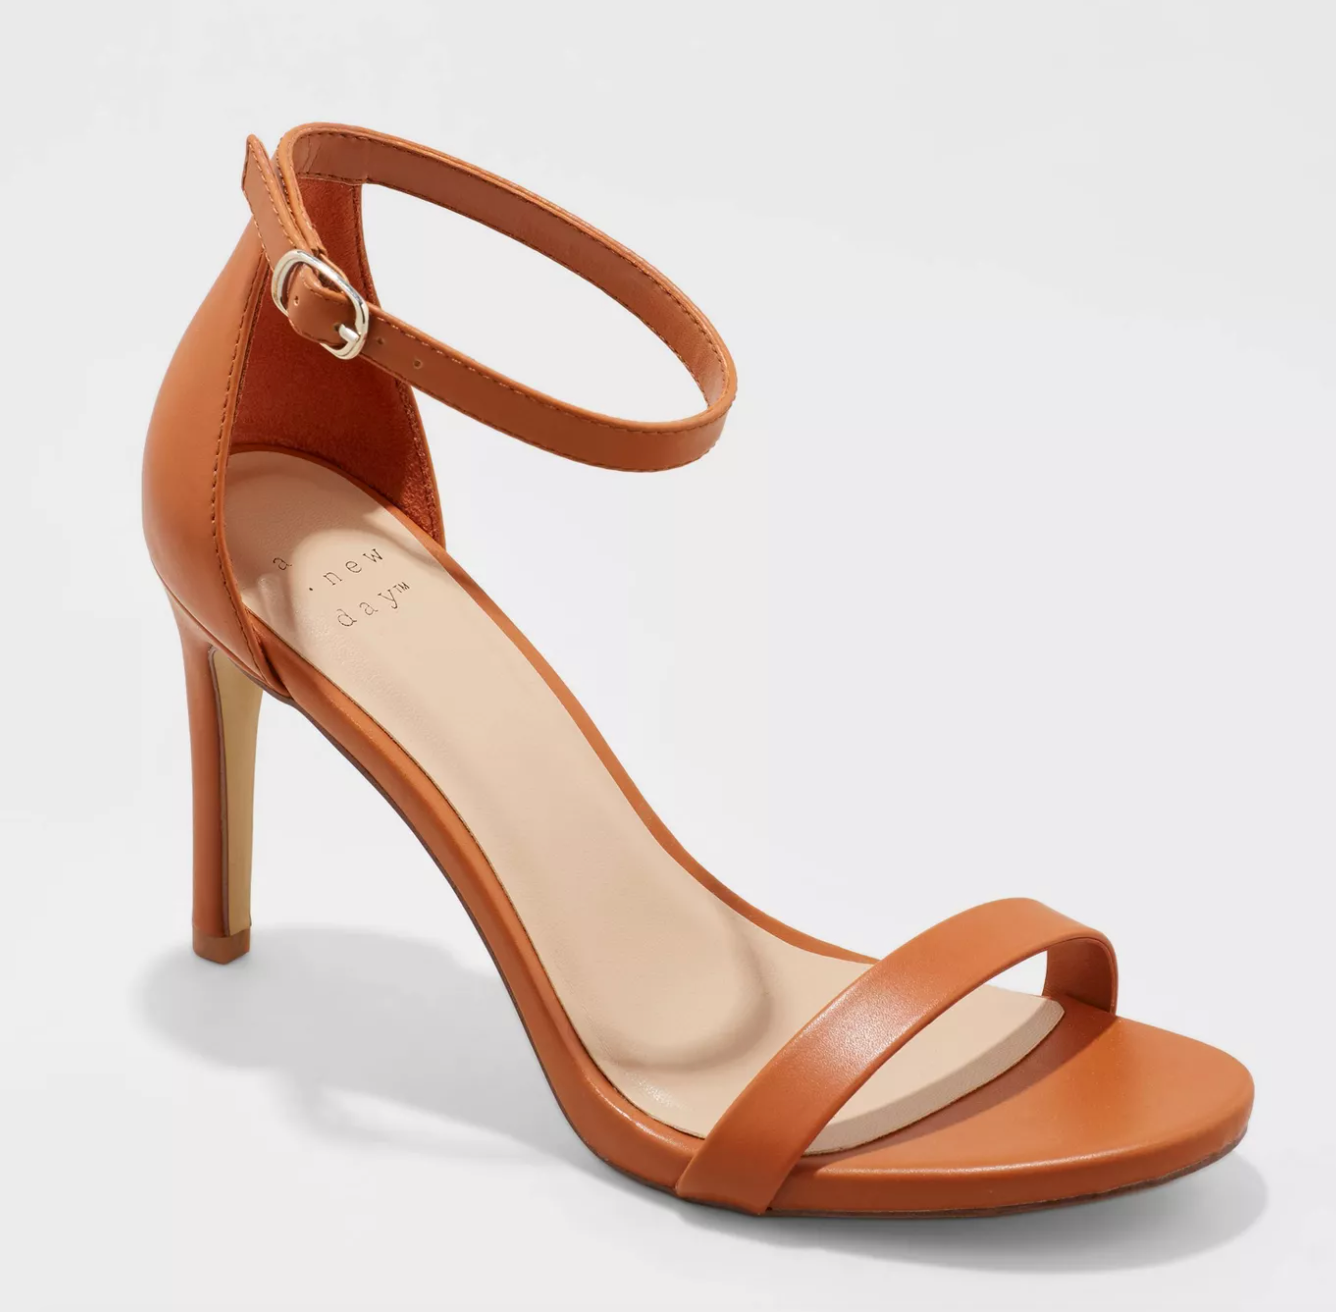 a brown shoe with a high thin heel and an ankle strap